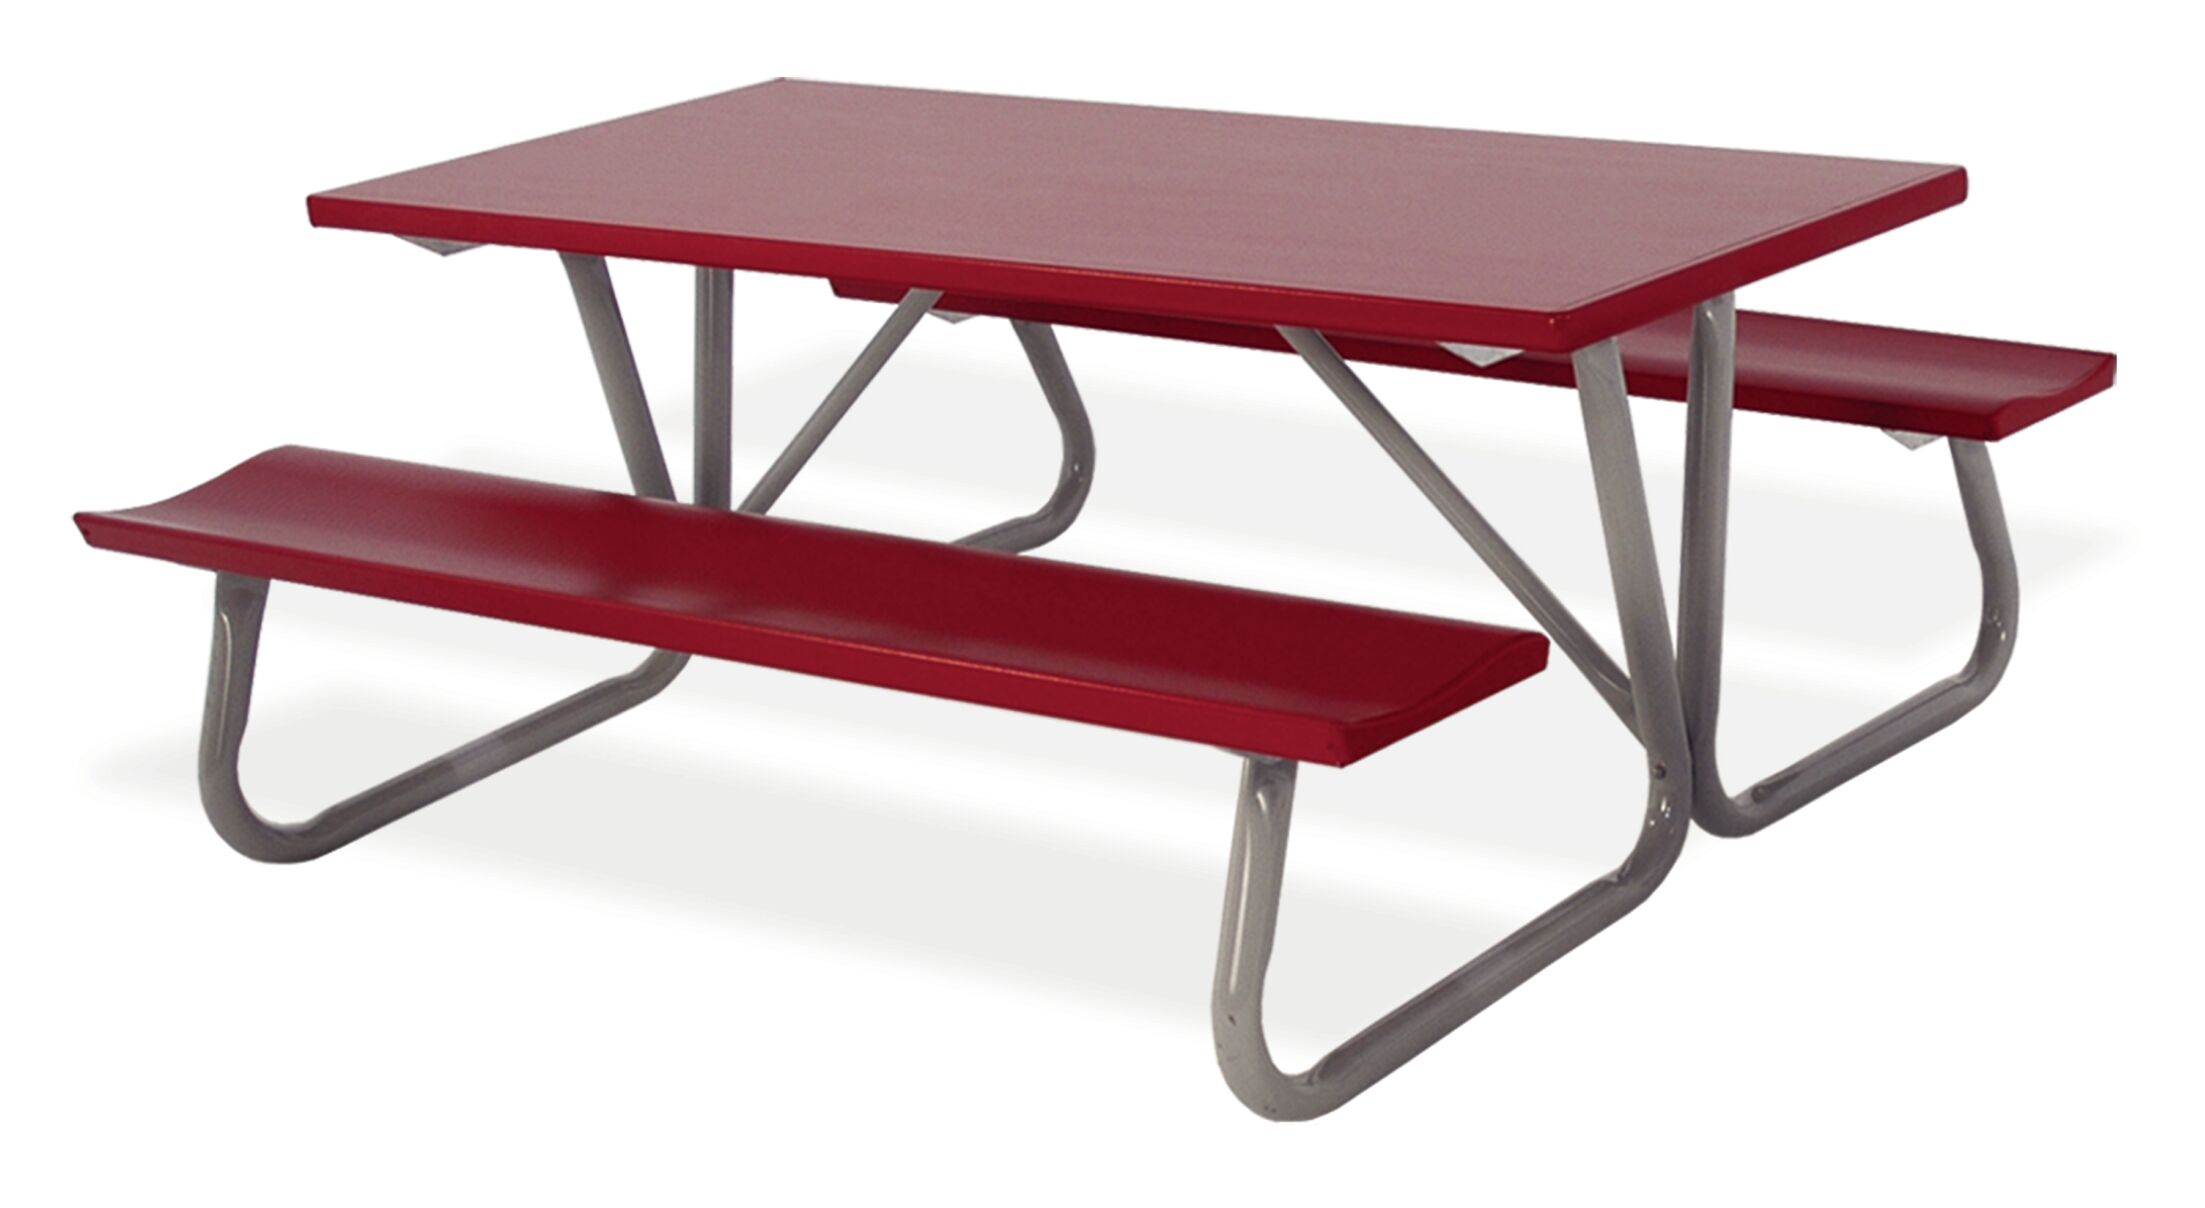 Southern Piknik Deluxe Picnic Table Table Size: 96